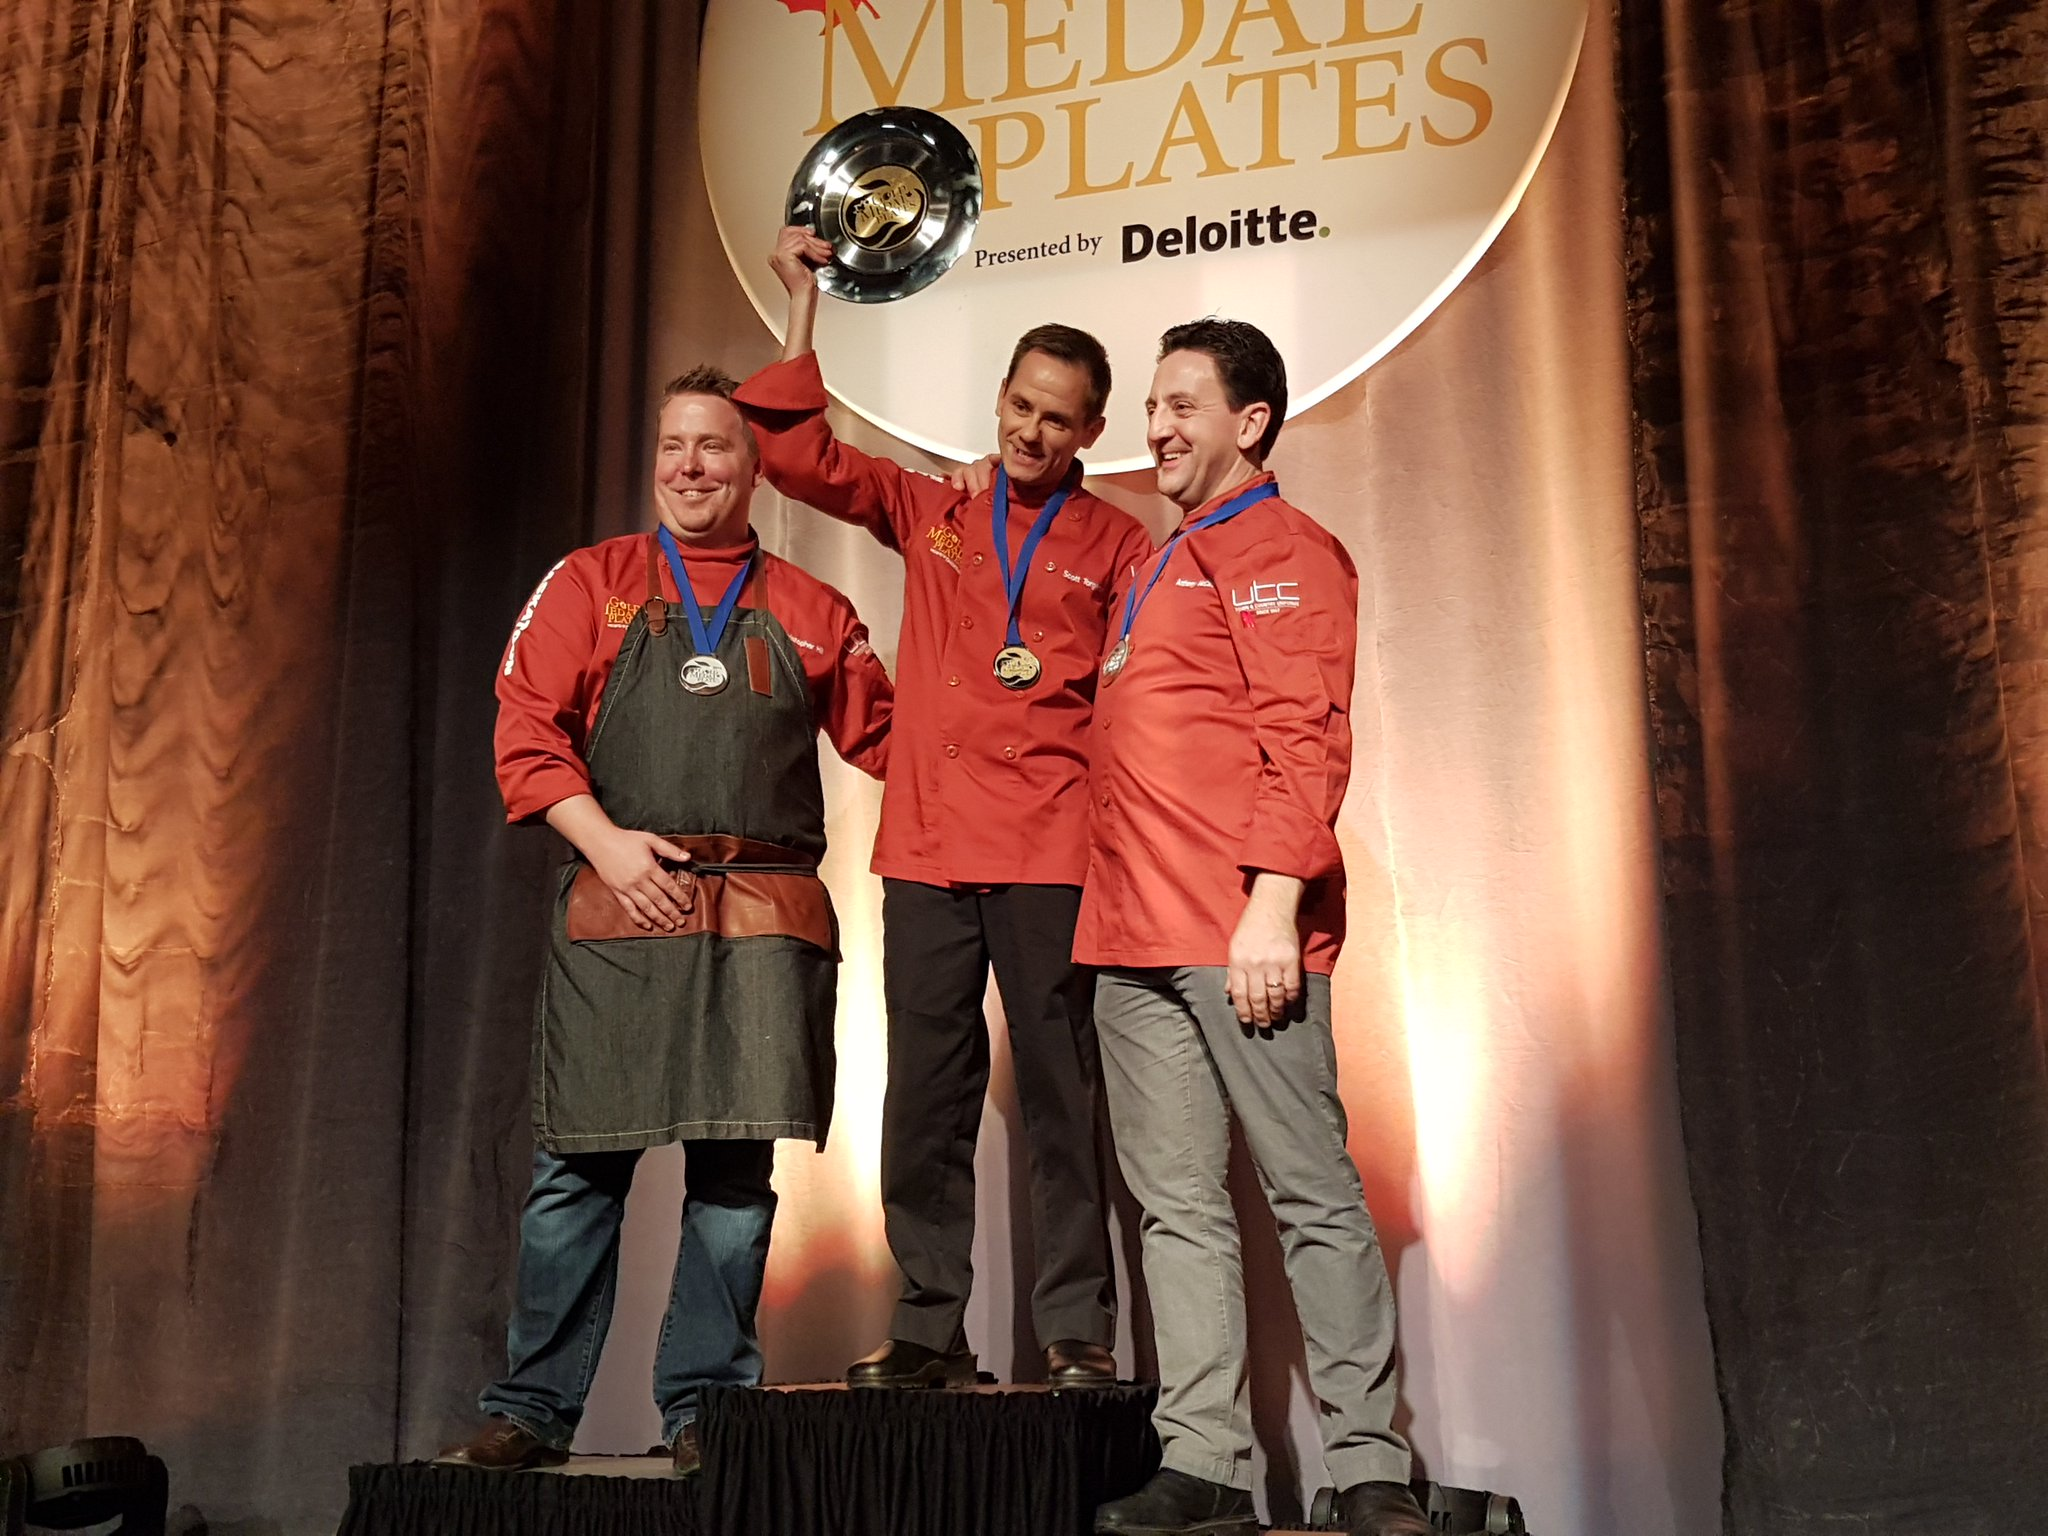 🏅 Podium finishers at #GMPSaskatoon: GOLD chef Scott Torgerson, silver @chef_ChrisHill, bronze @chef_ant. Congratulations! https://t.co/WVLTy9n4WU